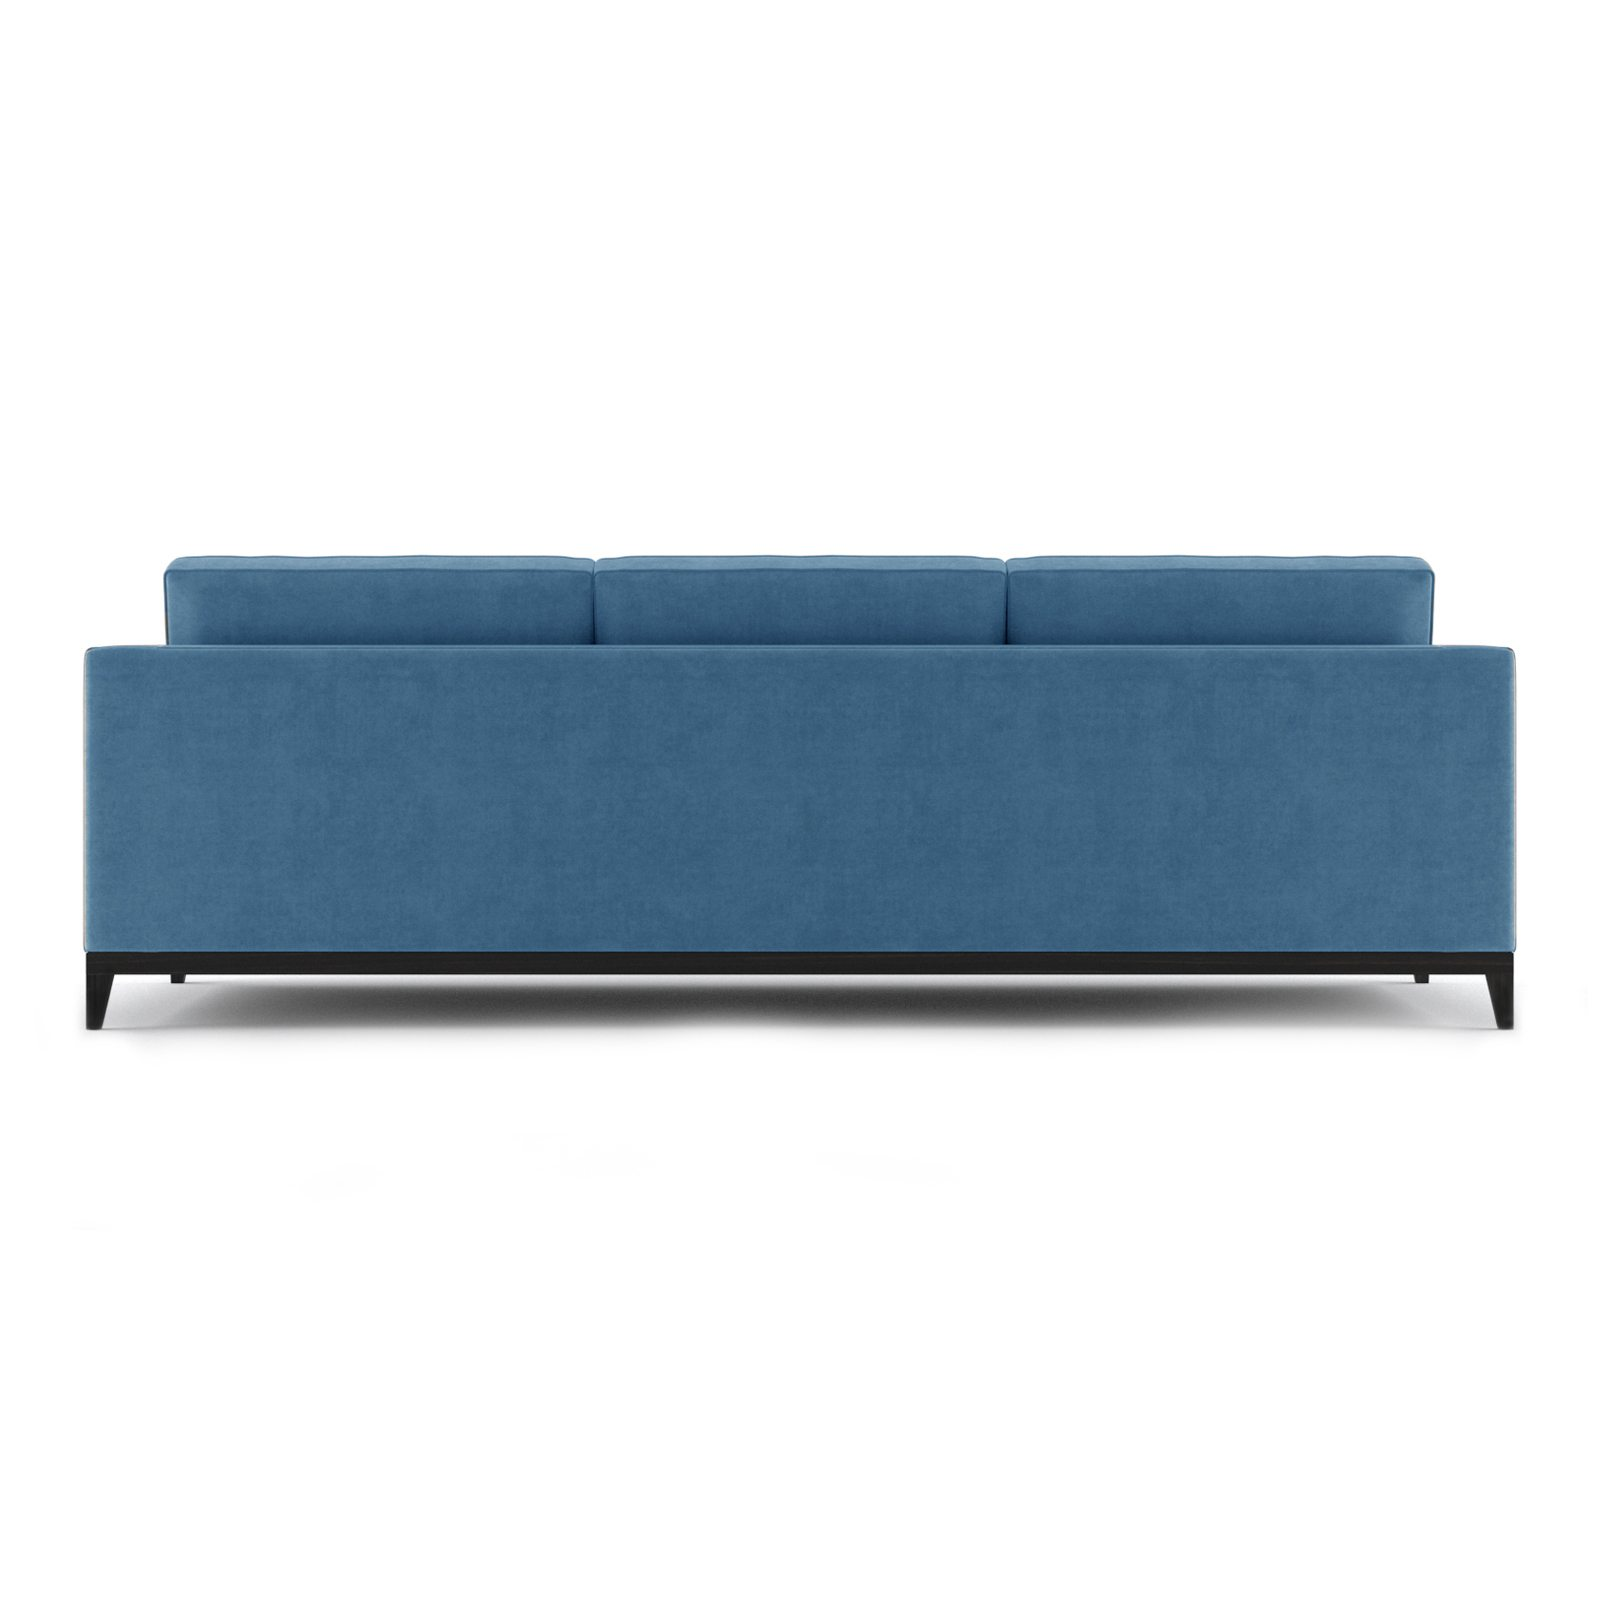 Armstrong Three and a Half Seater Sofa by Bonham & Bonham Blue 07